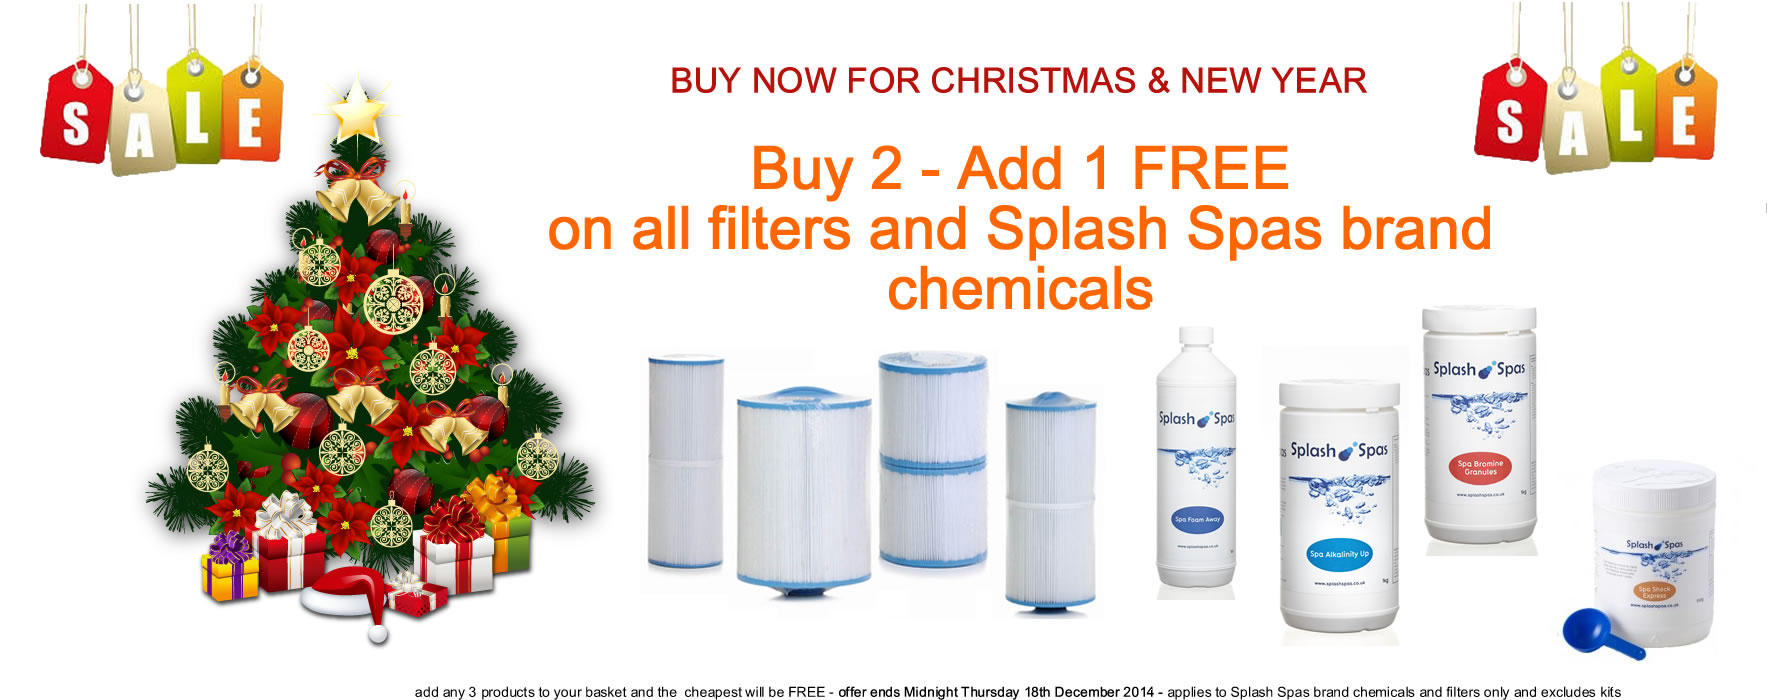 Splash Spas Hot Tub Chemicals